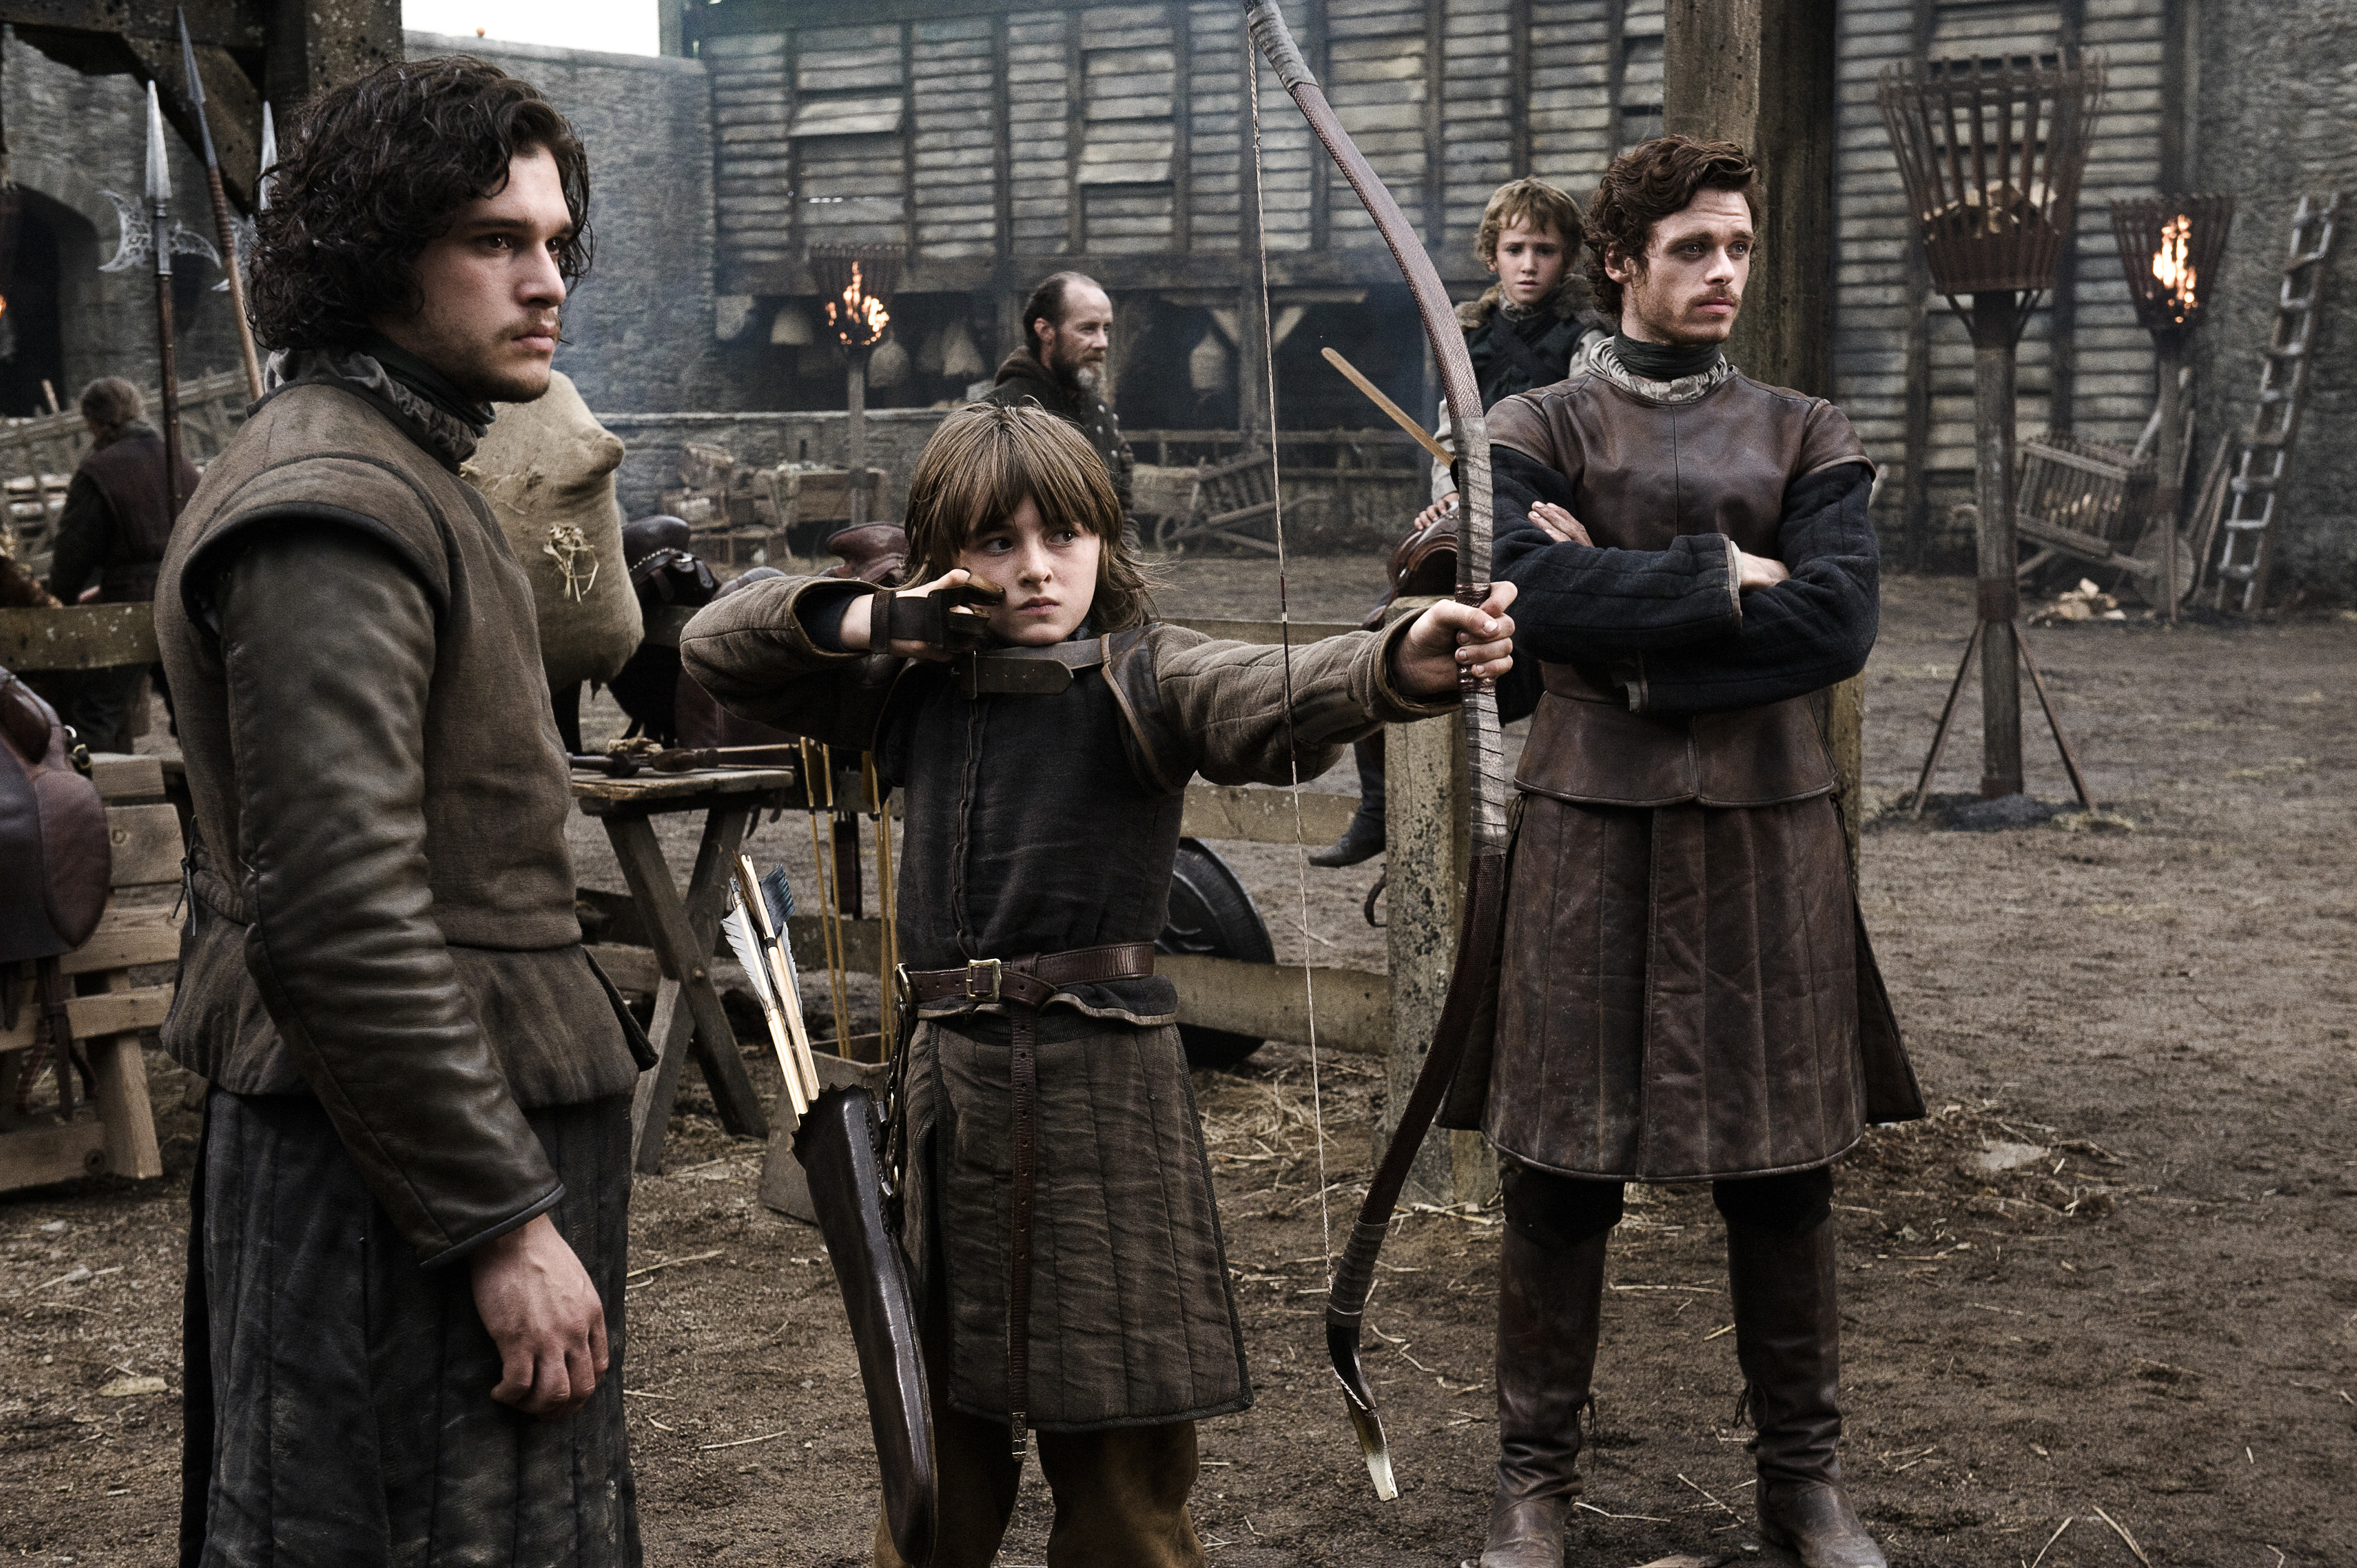 Jon snow, Bran Stark, and Robb Stark